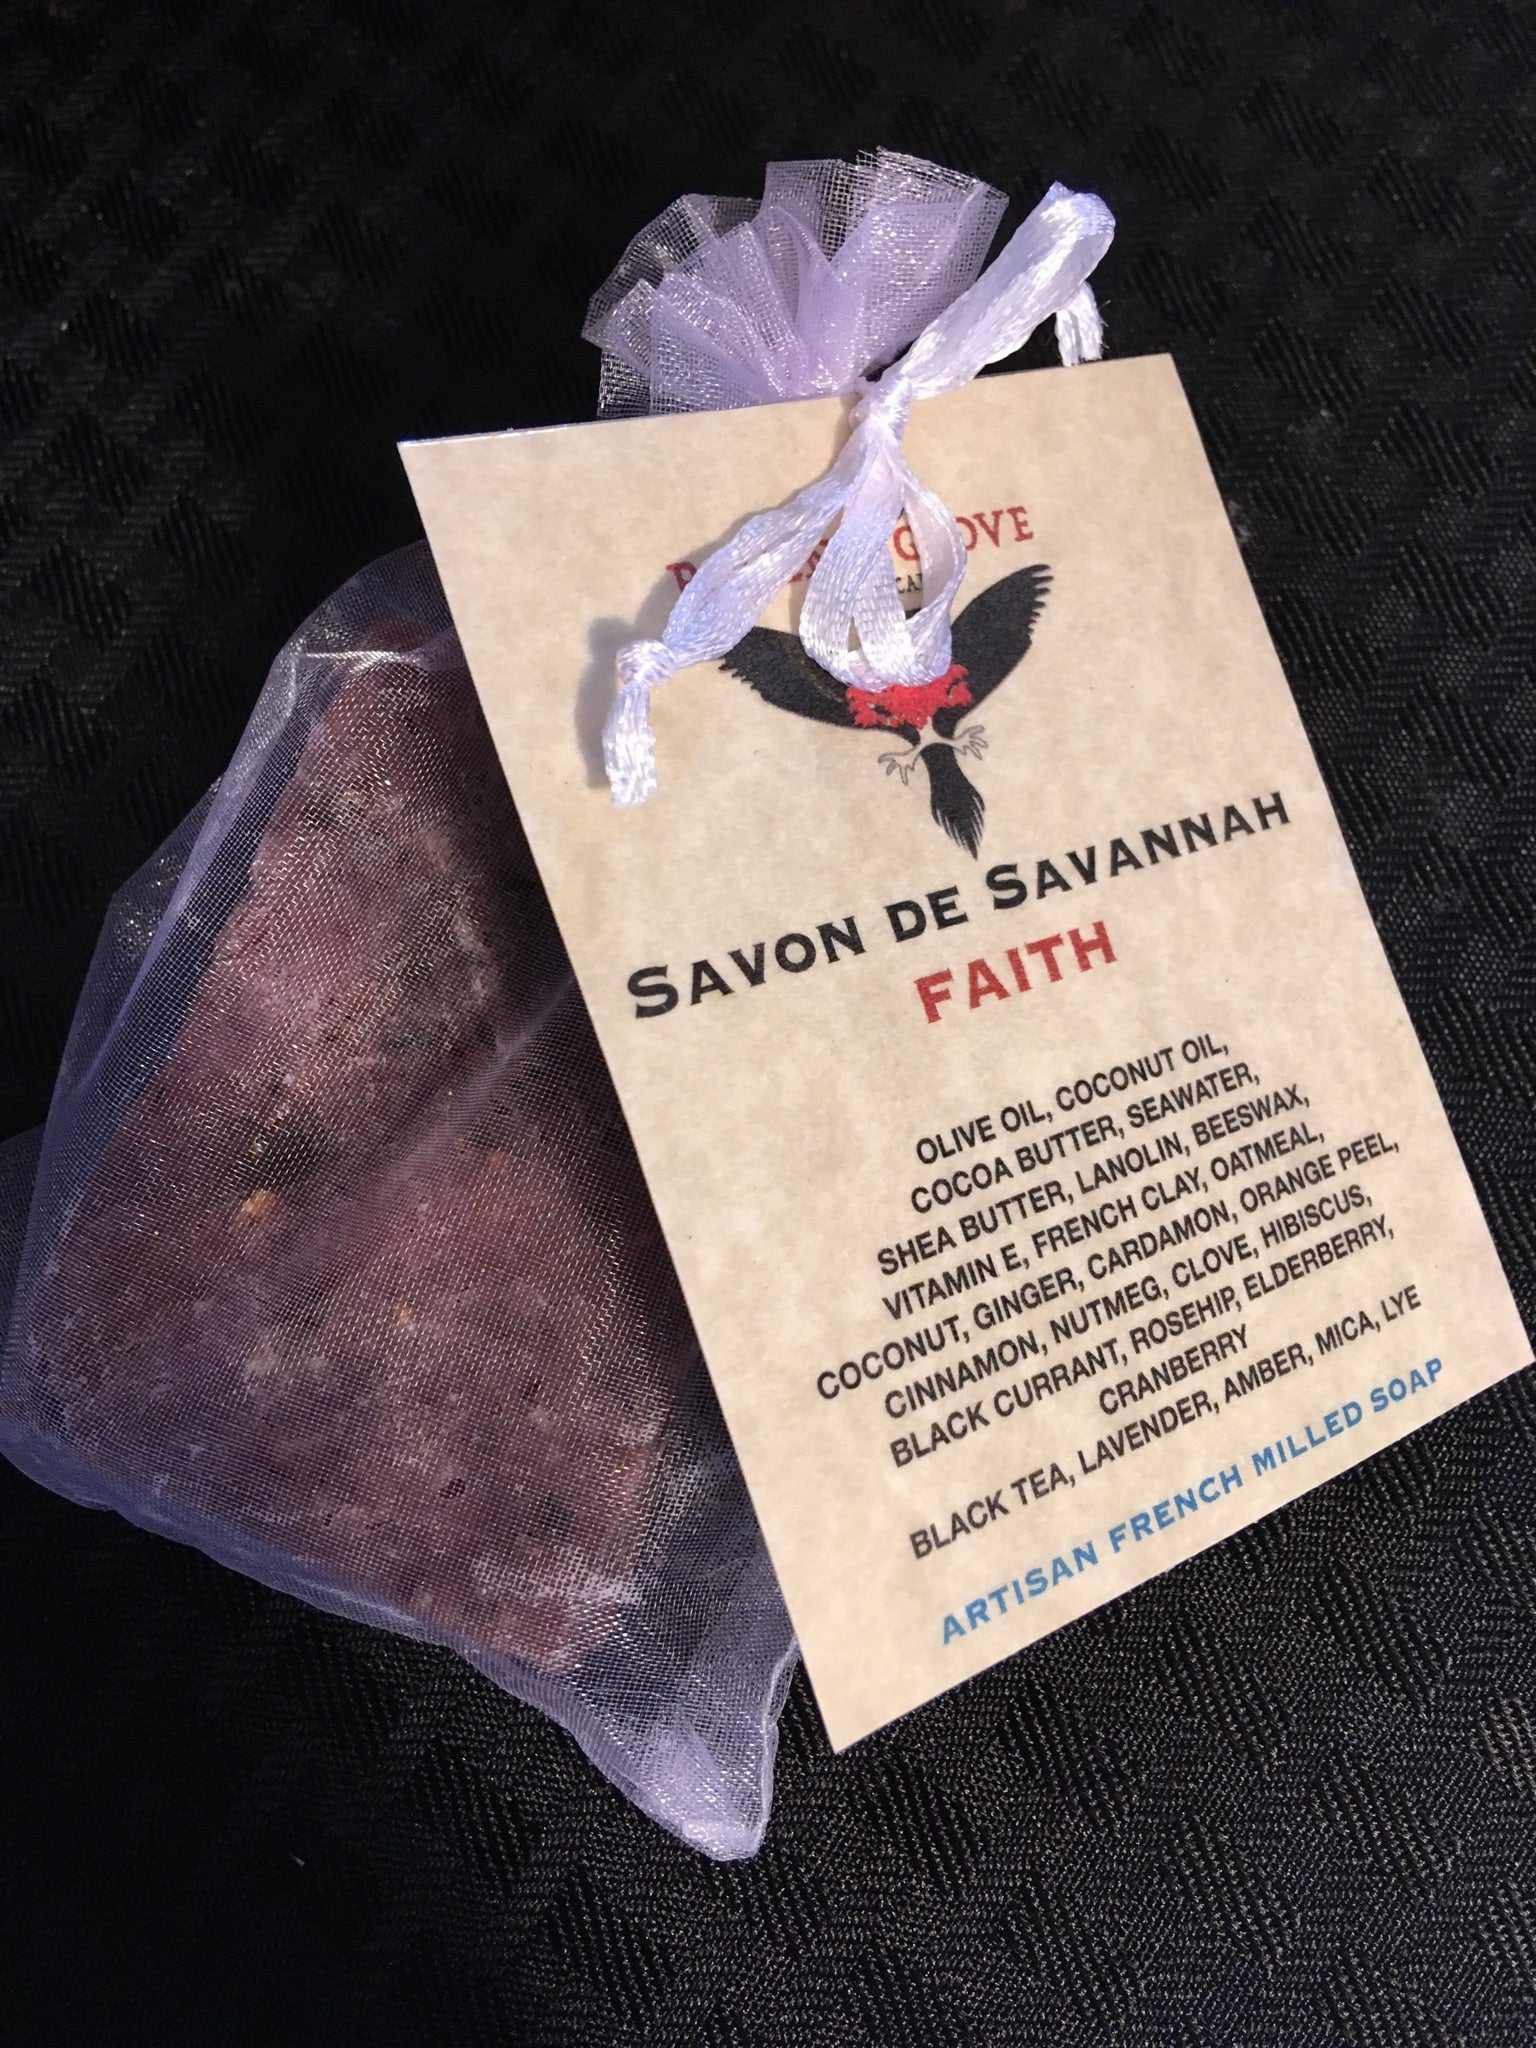 FAITH: ARTISAN FRENCH MILLED SOAP